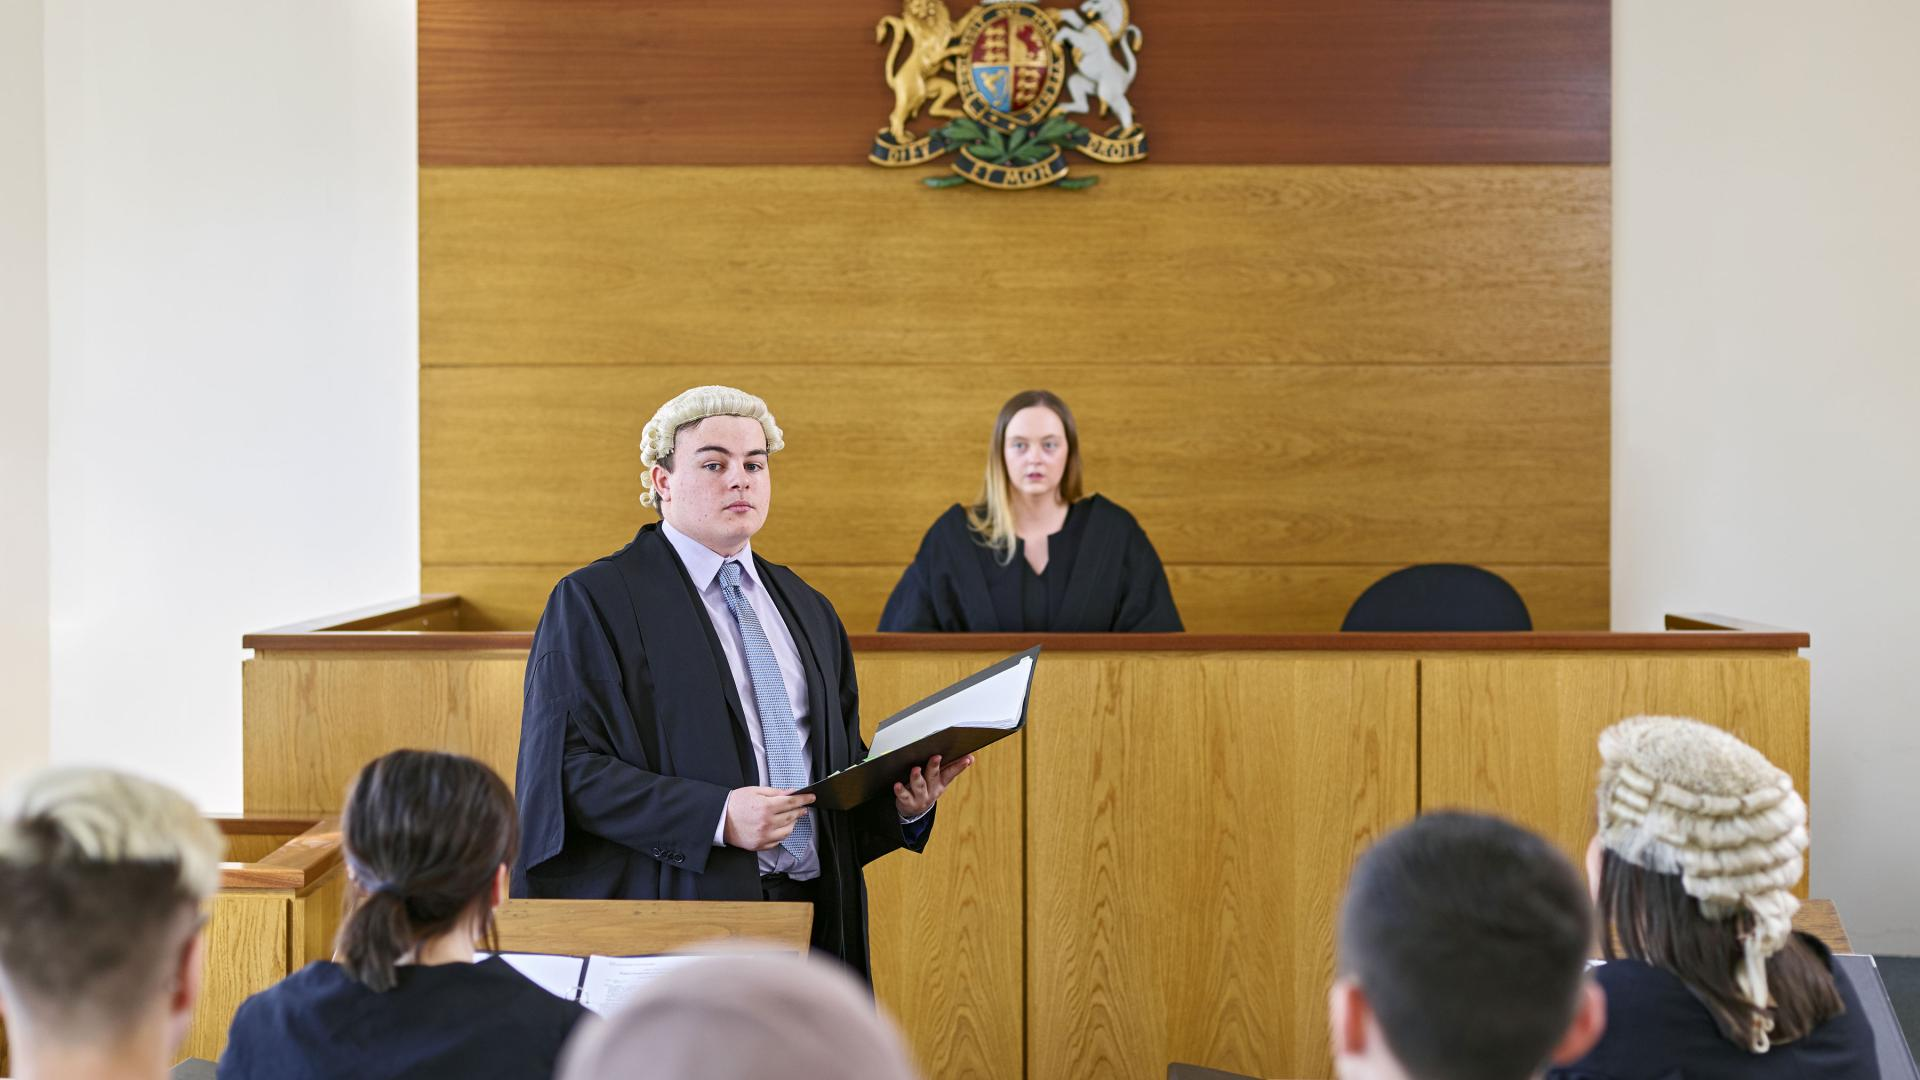 Students wearing robes and wigs in a moot court